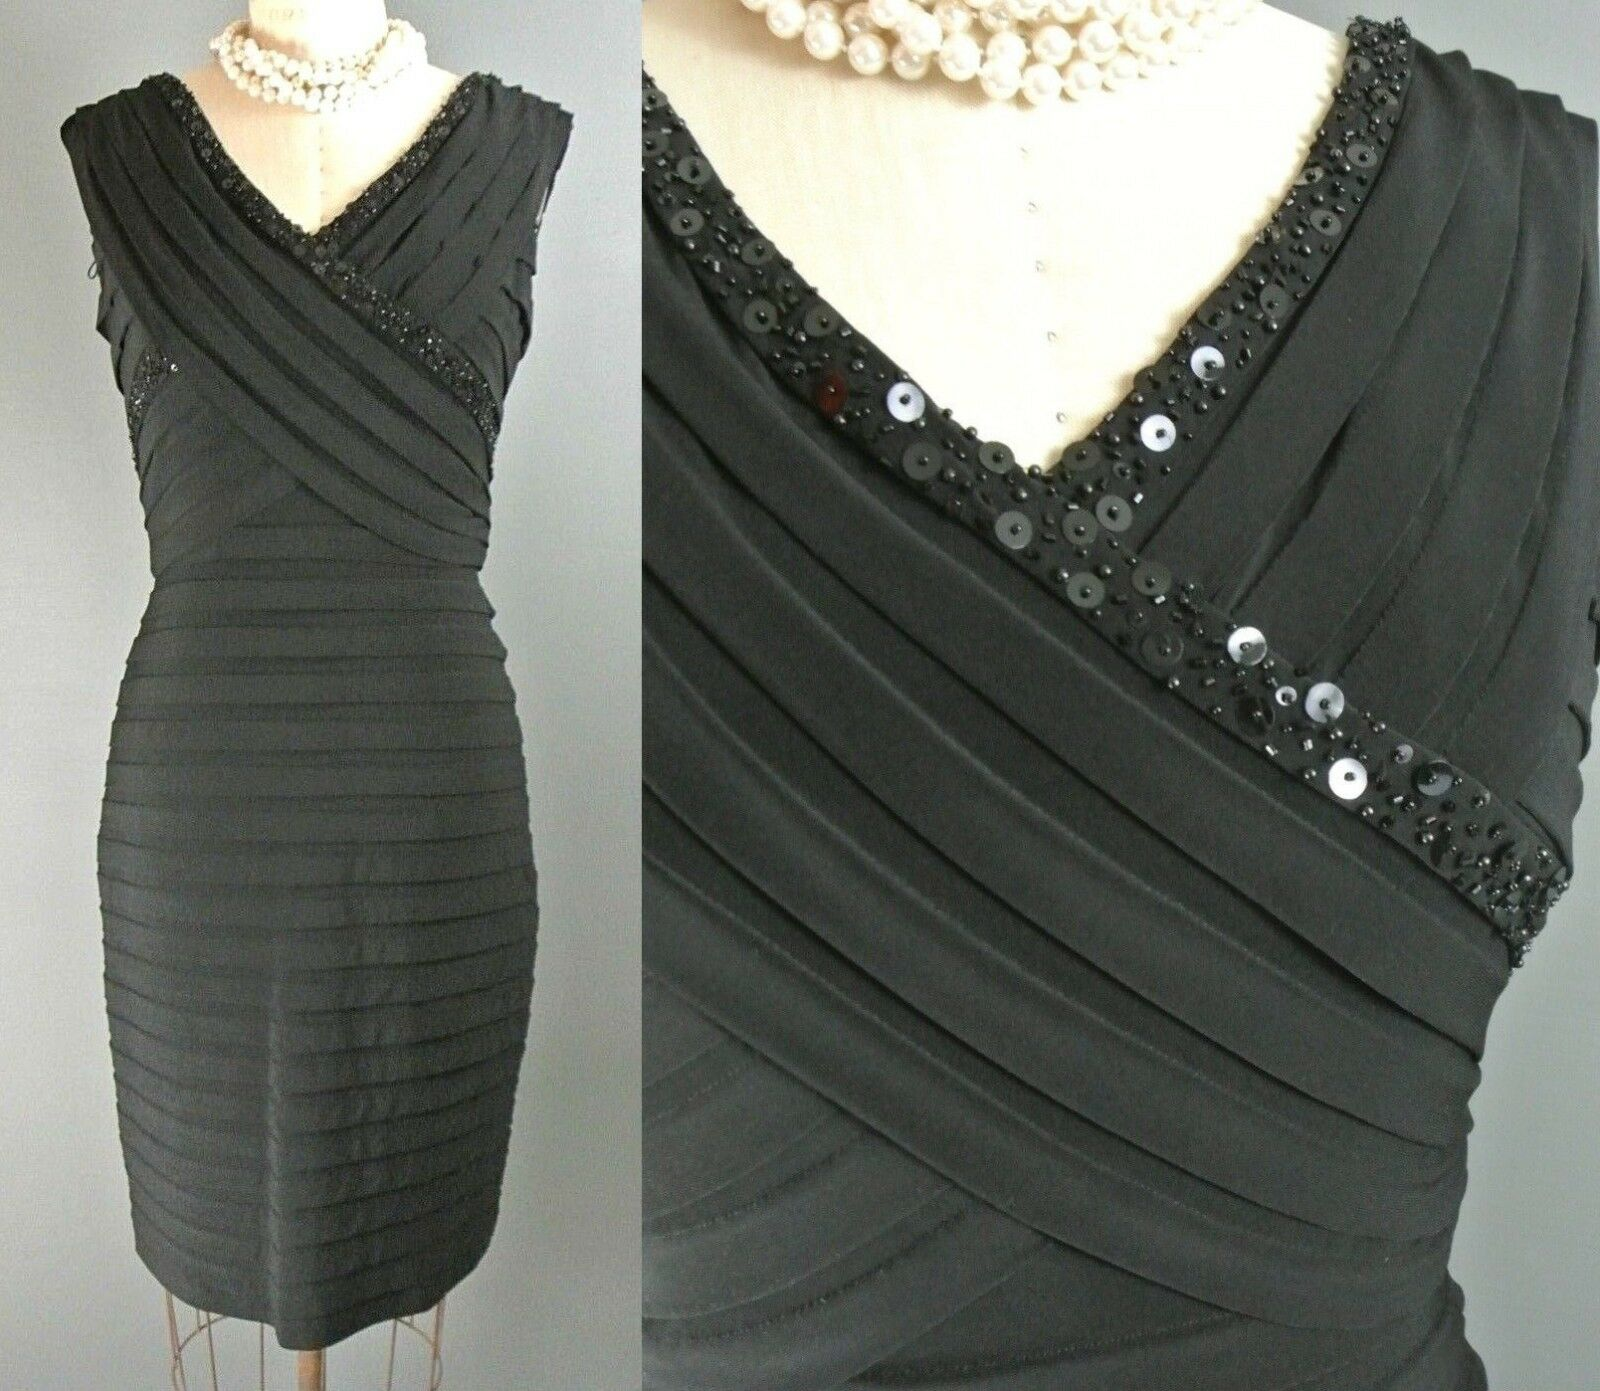 Adrianna Papell Cocktail Dress 12 schwarz Sleeveless Knee Length Formal Beaded1008